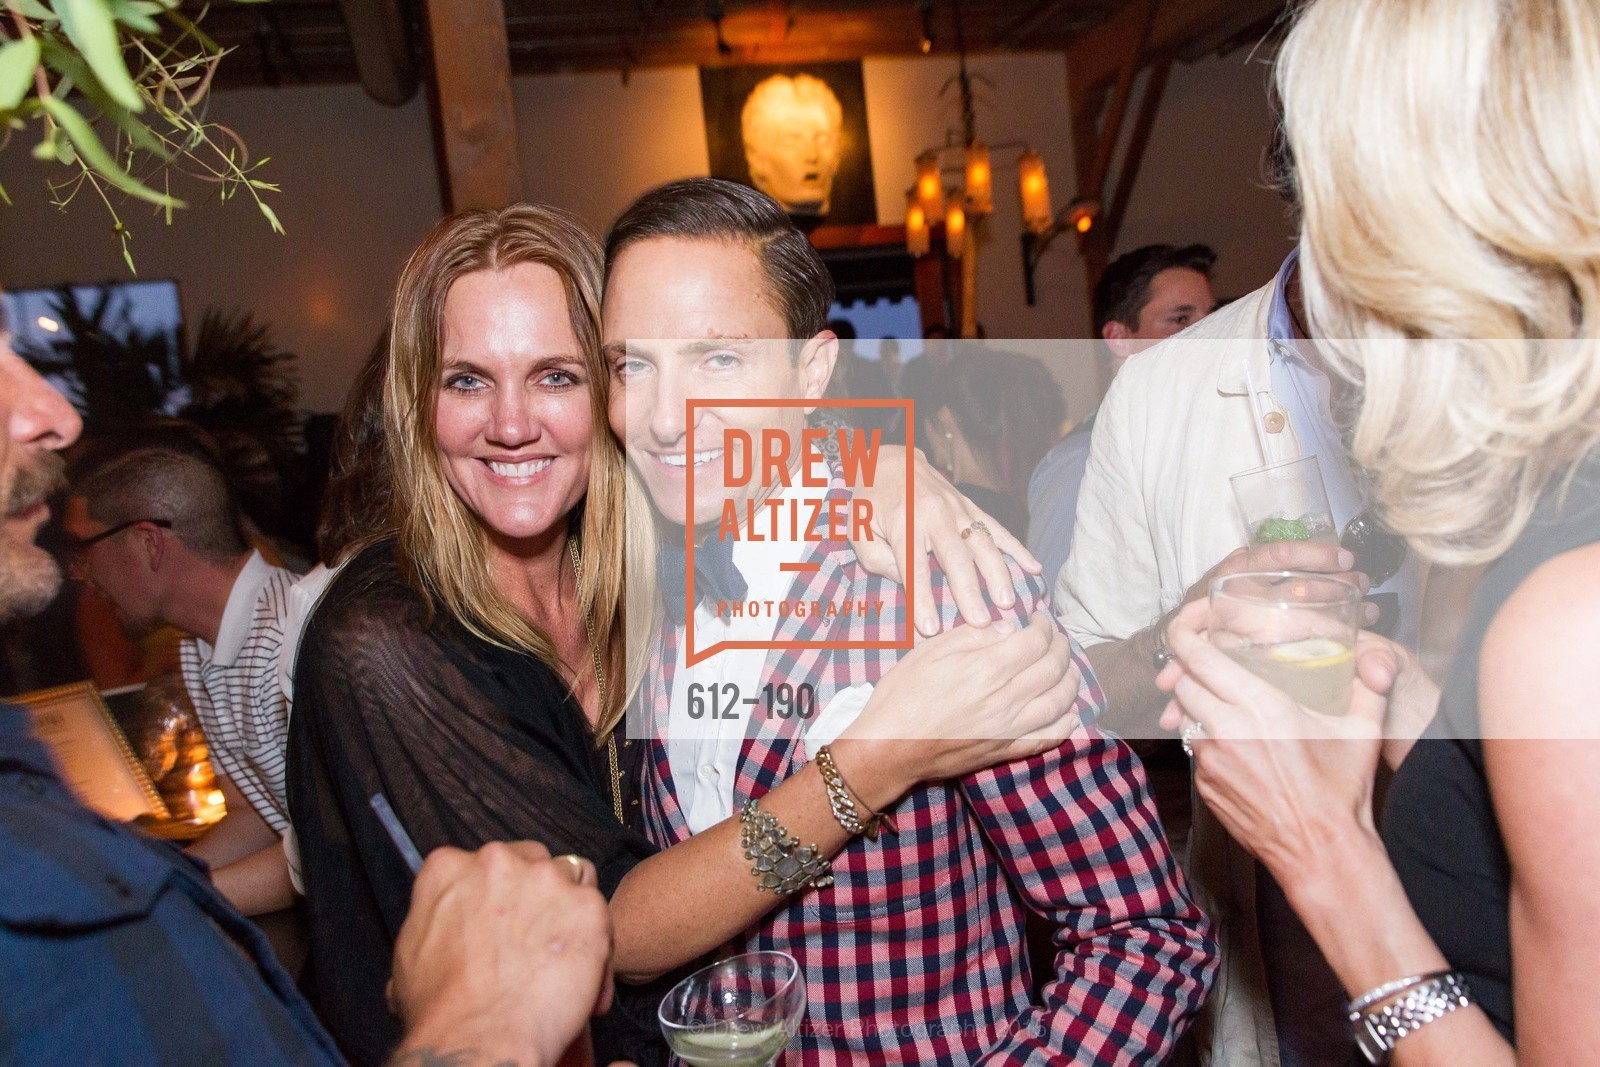 Jen Wick, Ken Fulk, KEN FULK'S New Furniture Line Unveiling at THE MAGIC FACTORY, The Magic Factory. 310 7th St, June 25th, 2015,Drew Altizer, Drew Altizer Photography, full-service agency, private events, San Francisco photographer, photographer california